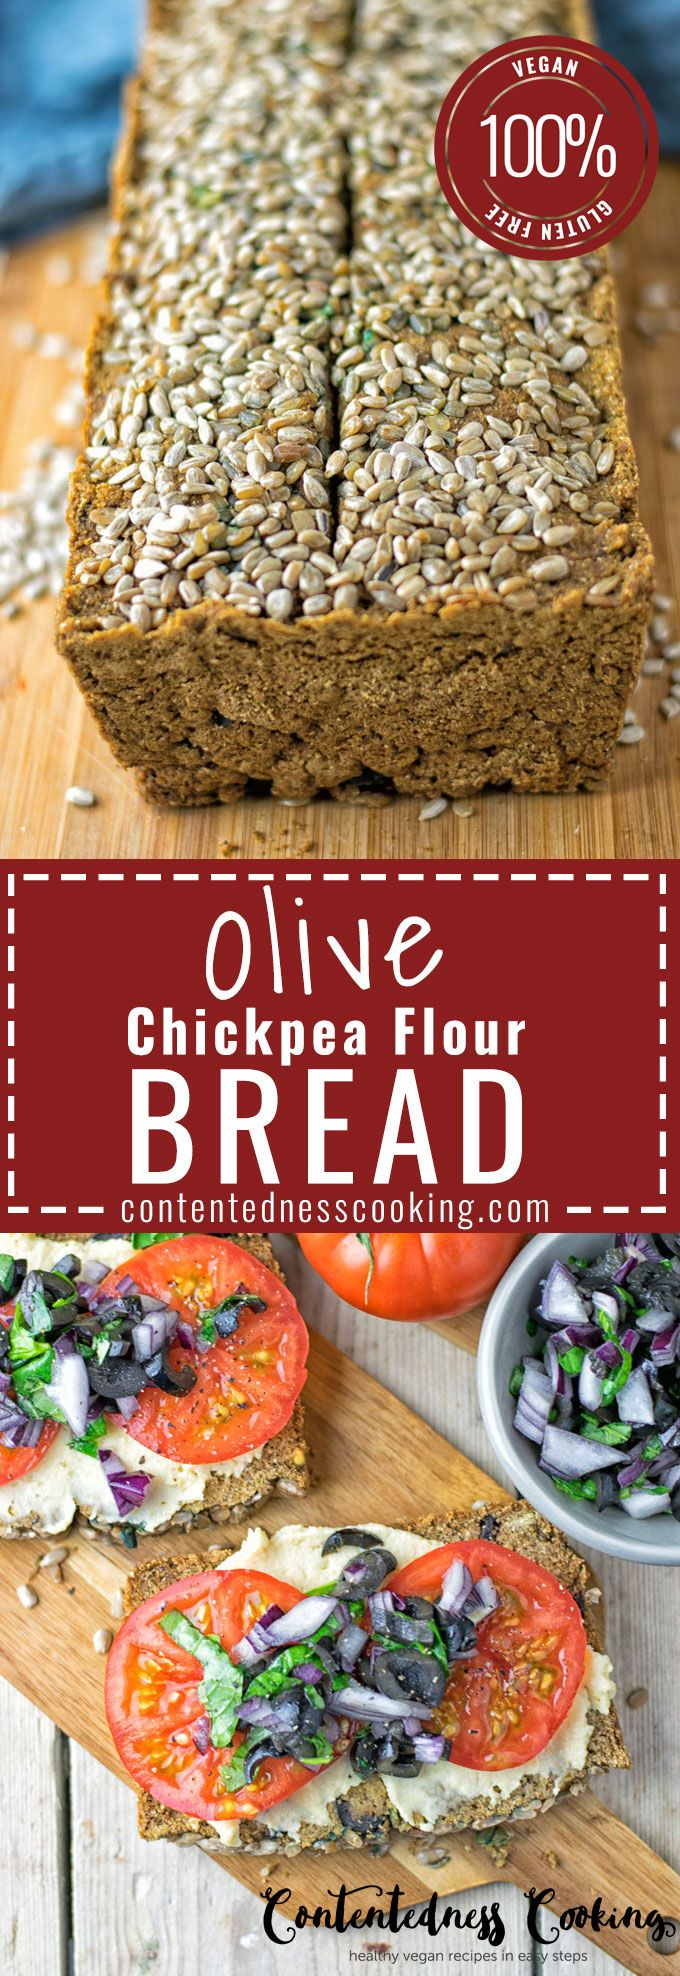 Olive Chickpea Flour Bread recipe brings you a fresh homemade vegan and gluten free bread with extra flavor. Only 5 ingredients, 3 easy steps with a hearty taste that will blow you away.